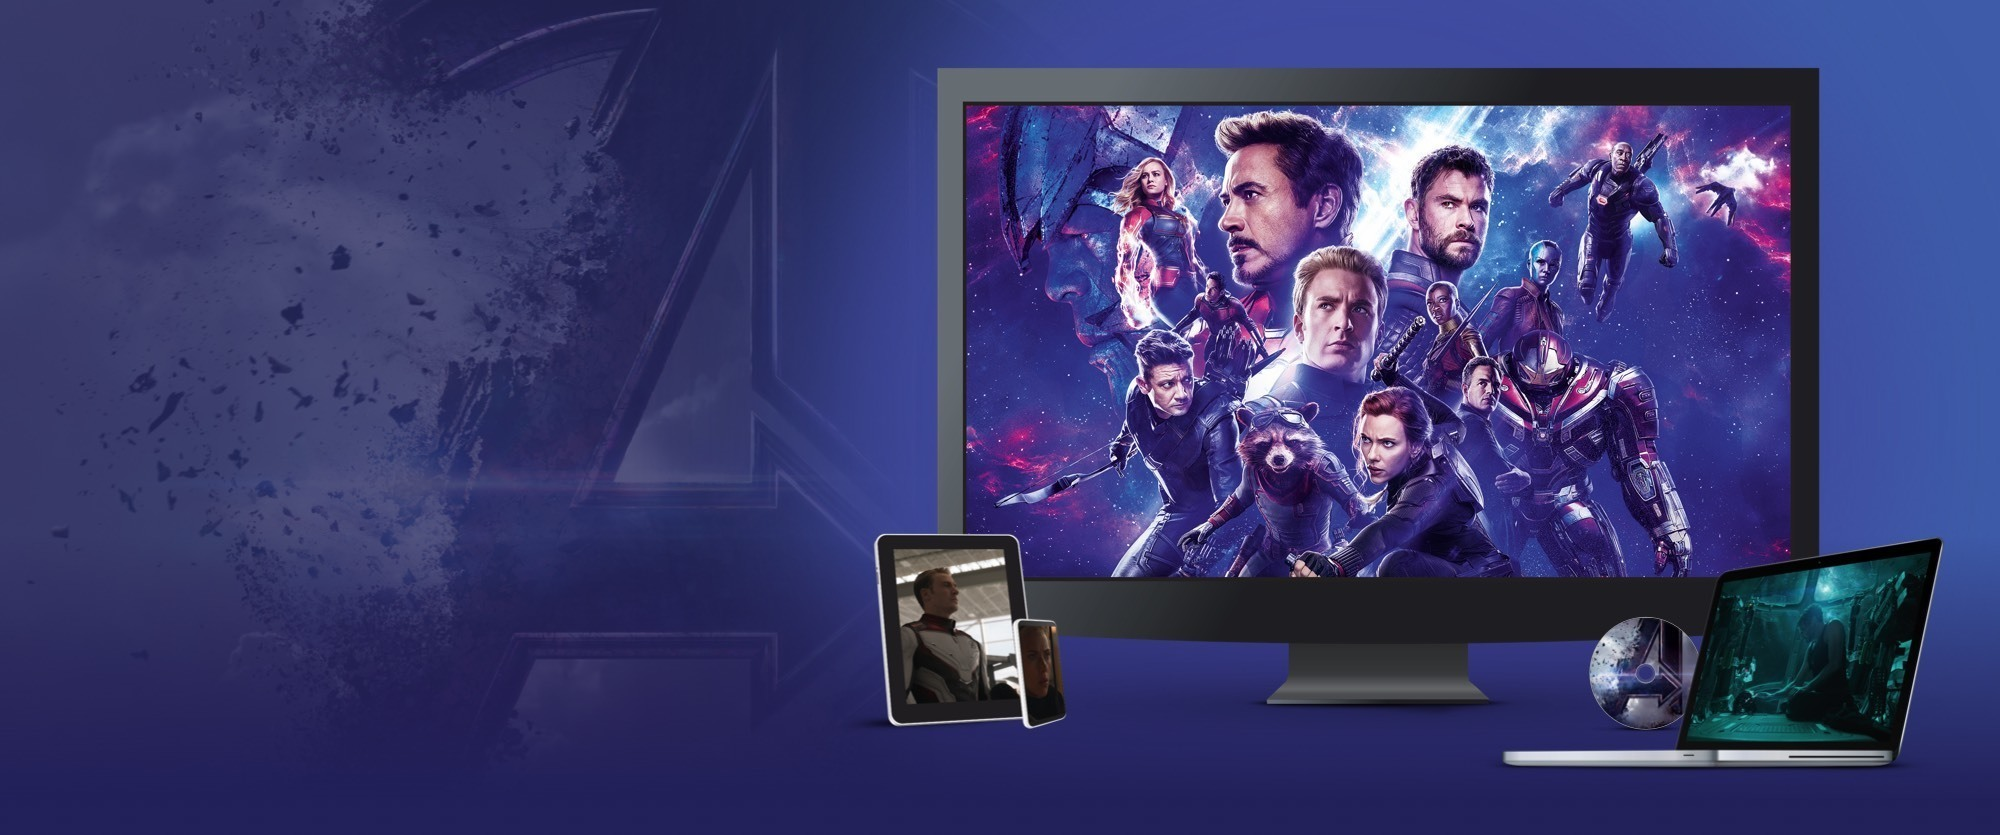 Avengers: Endgame disponibile in Blu-ray. DVD e Digital Download